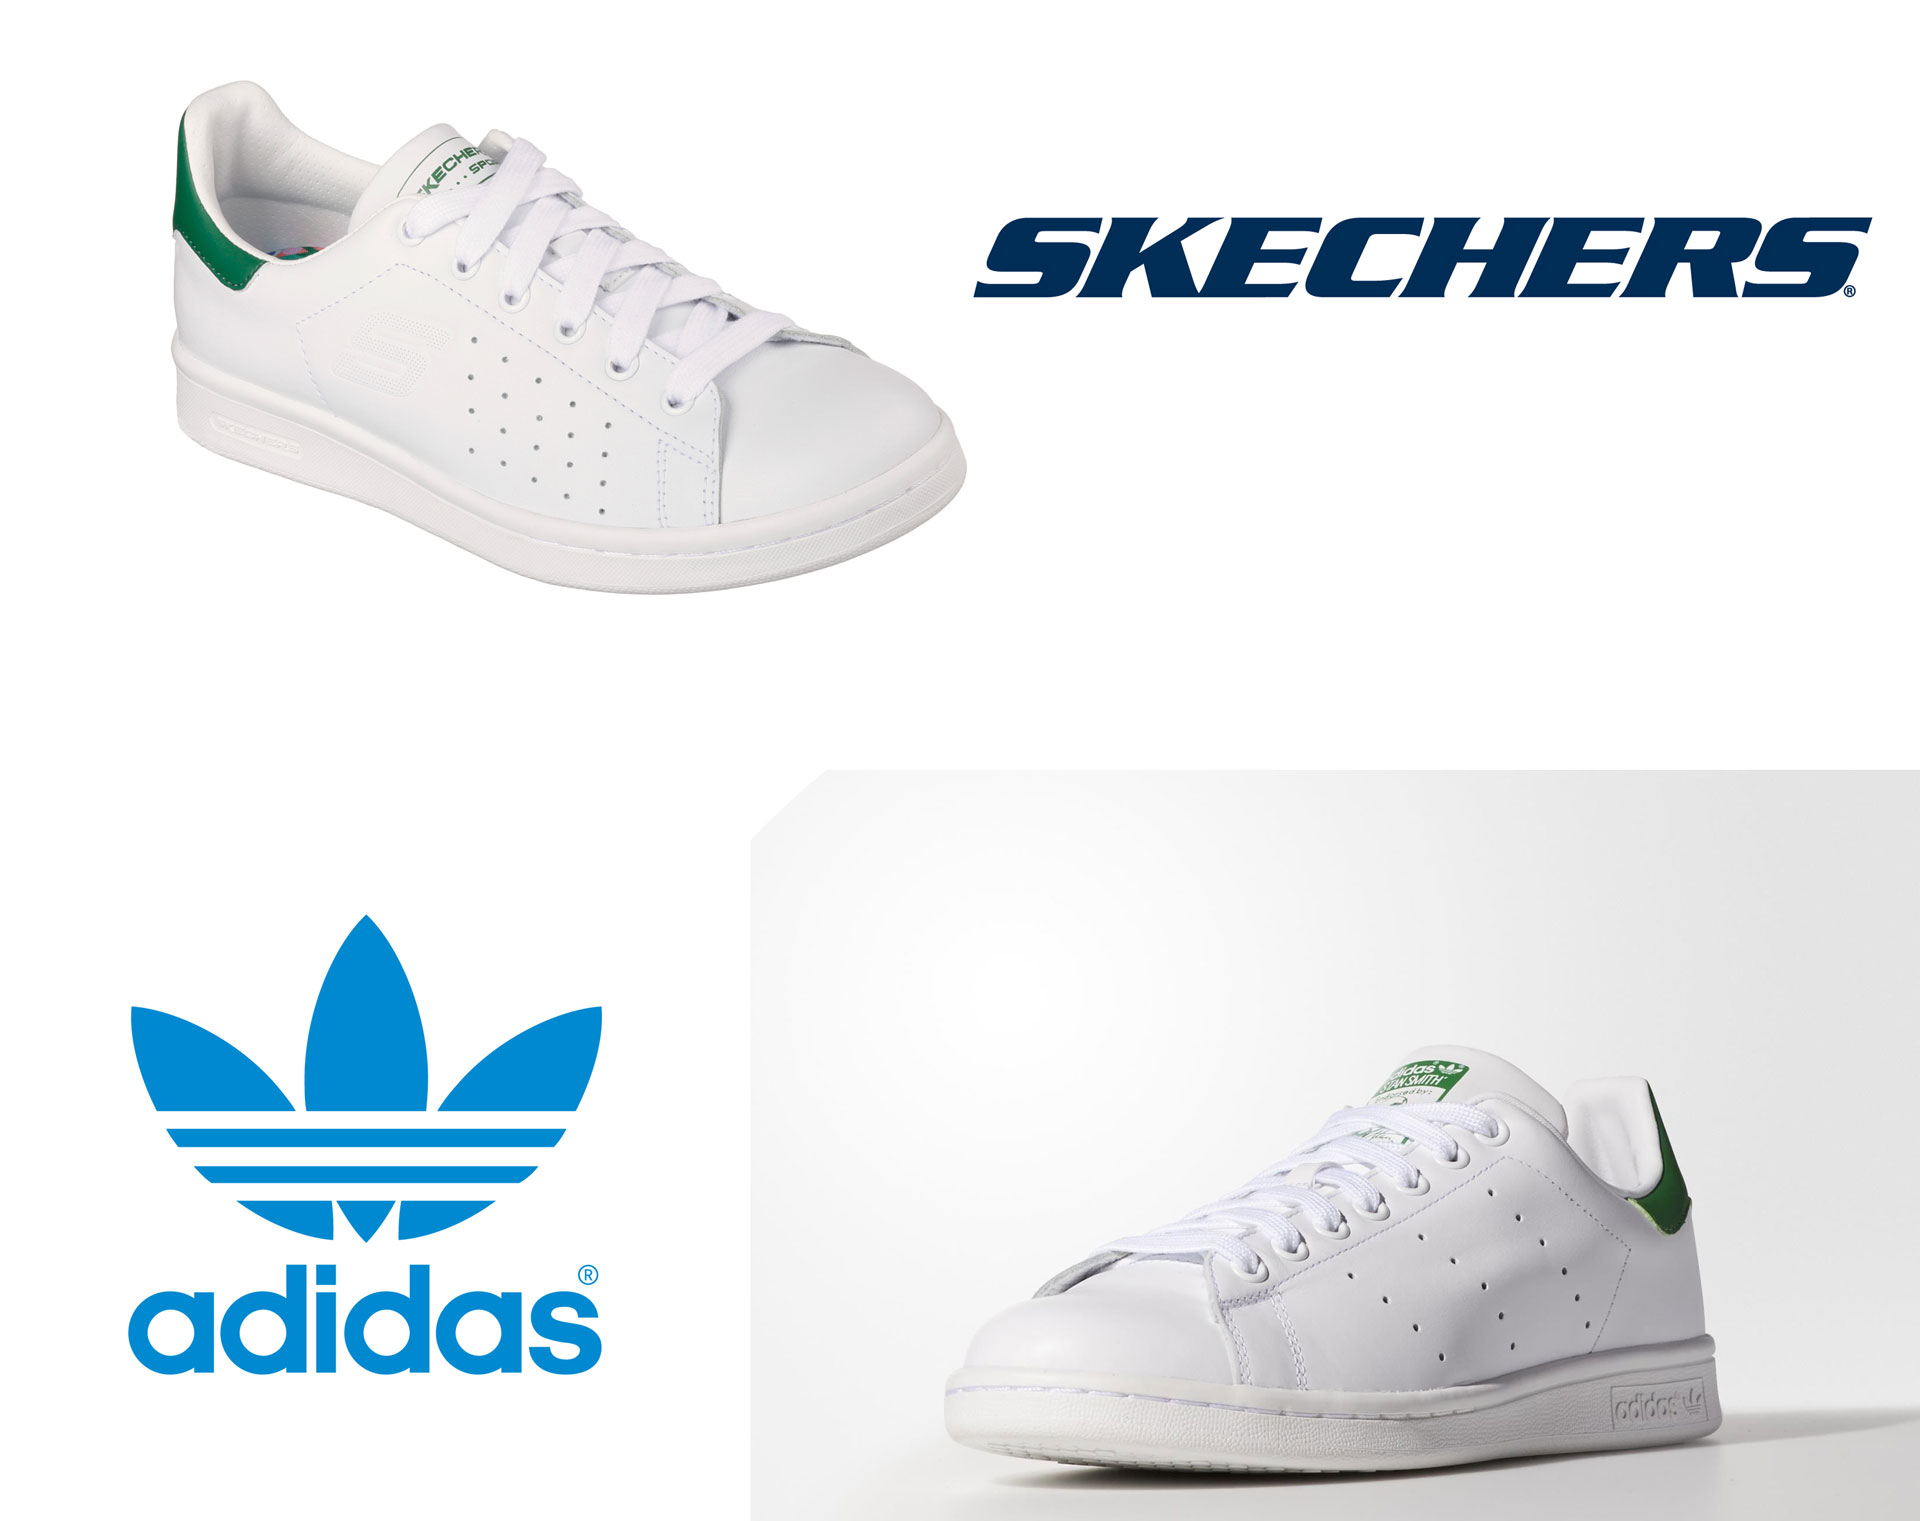 4d1665709 Adidas Sues Skechers Over Knockoff Stan Smith Sneakers - Fordham ...